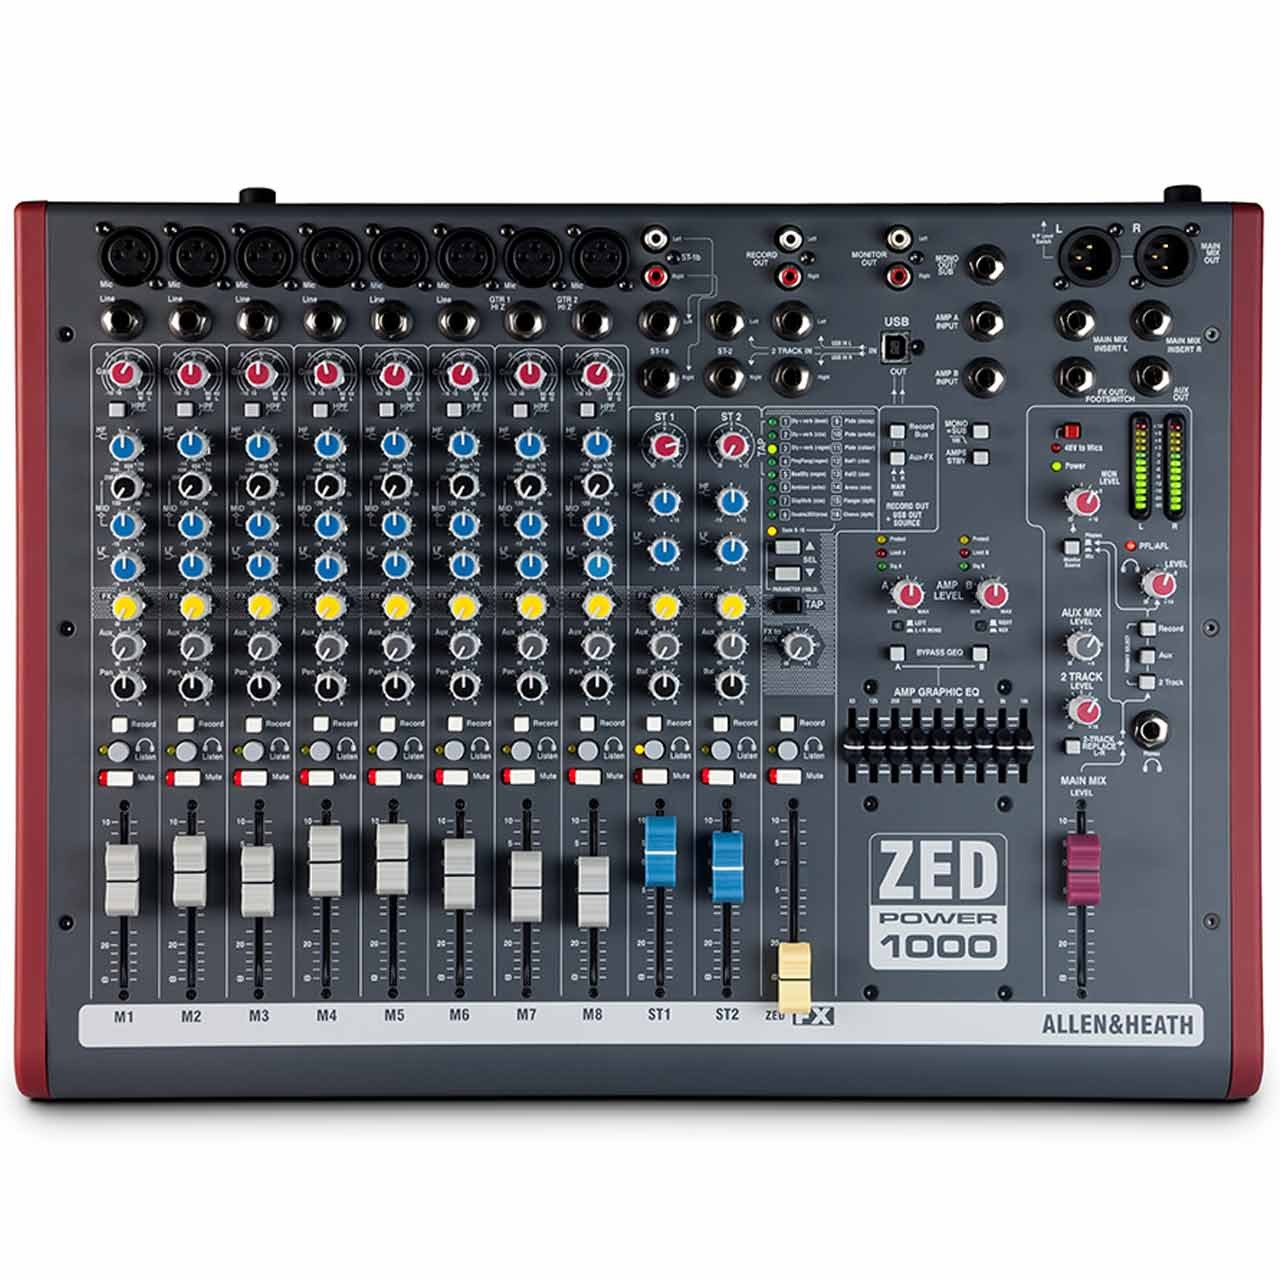 Analog Mixers - Allen & Heath ZED Power 1000 - Powered Analogue Mixer With USB